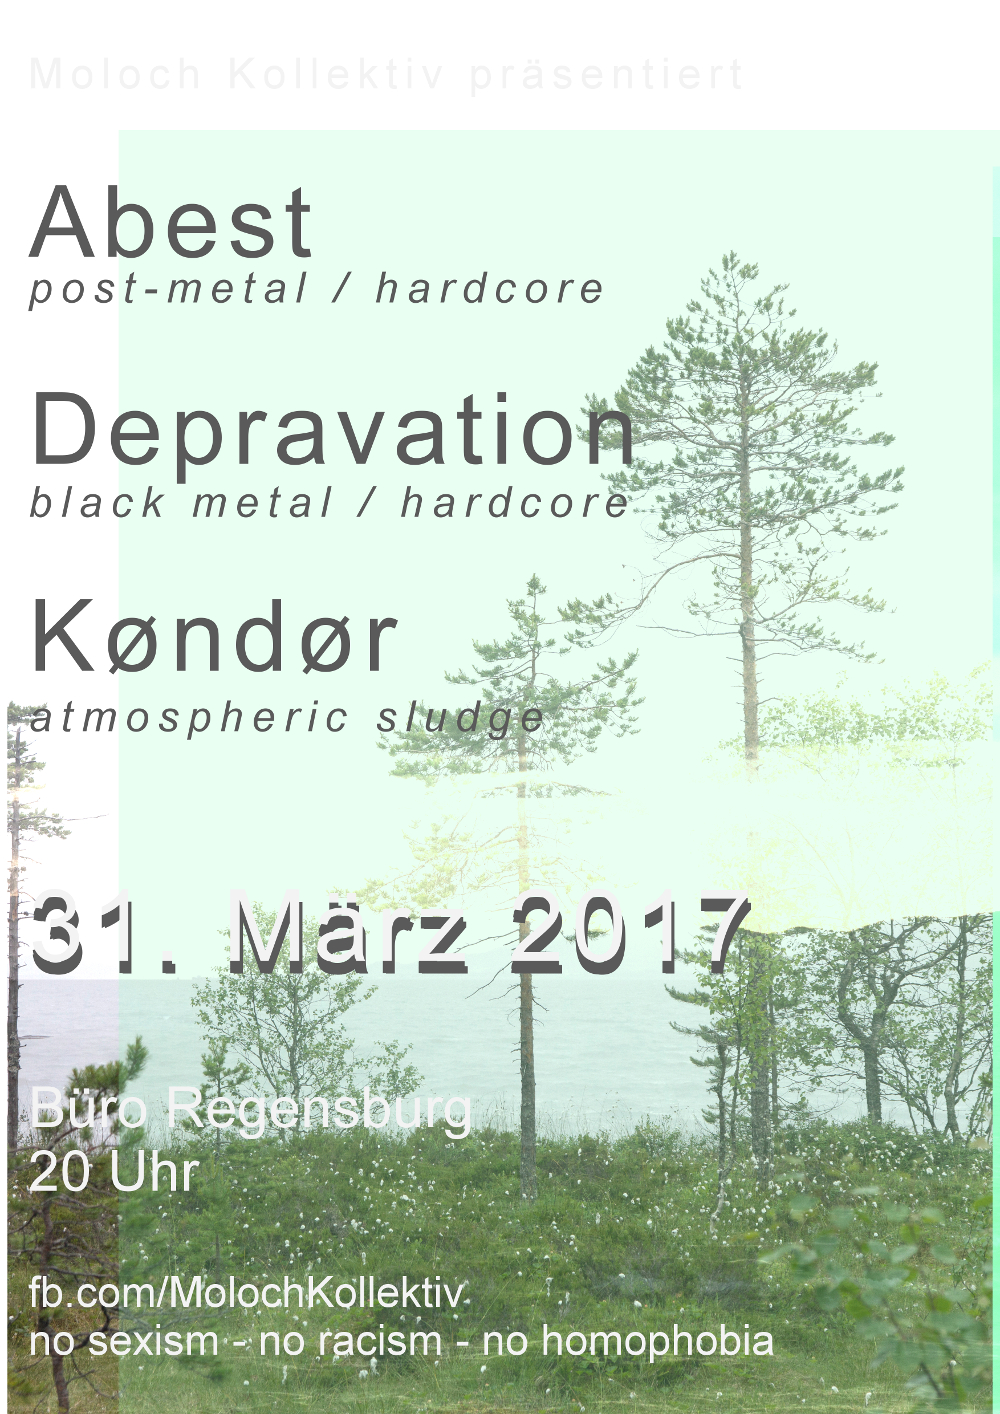 2017-03-31 Depravation + Kondor + Abest + Moloch Kollektiv Flyer